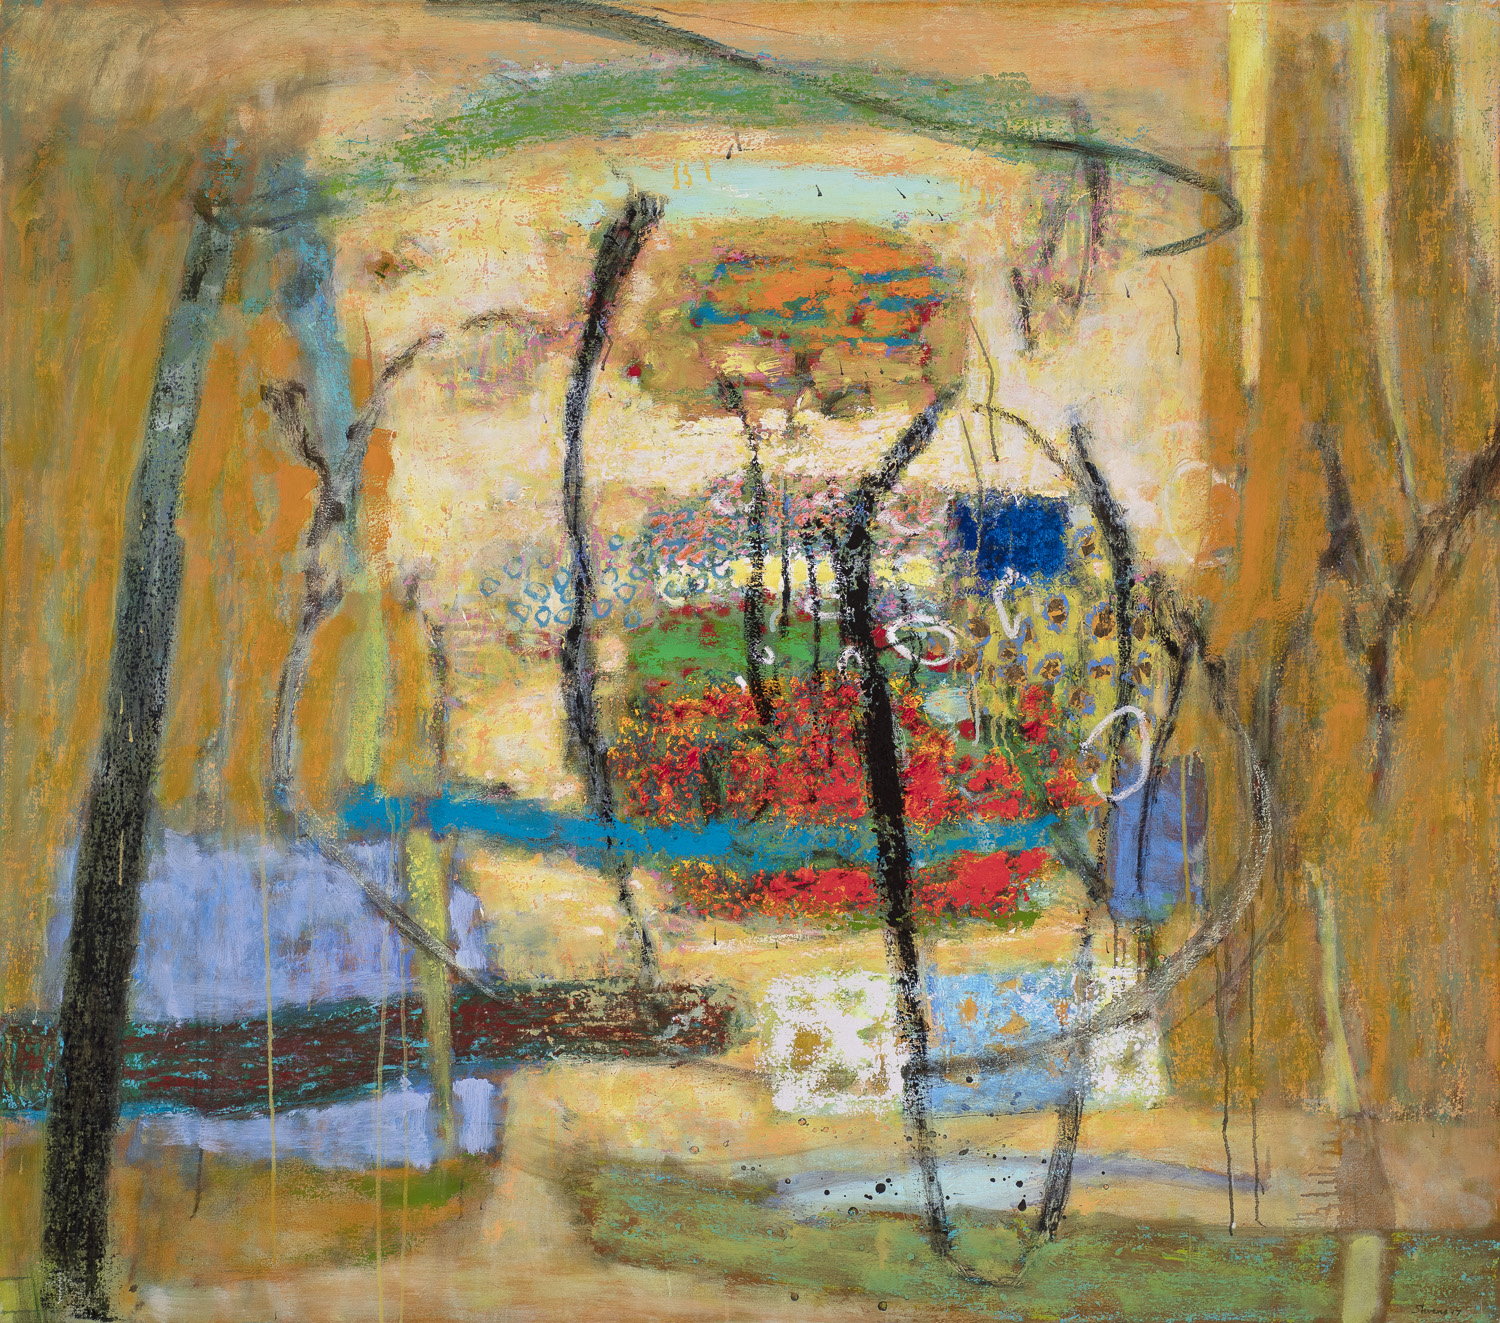 Gregarious Coalescing   | oil on canvas | 48 x 54"